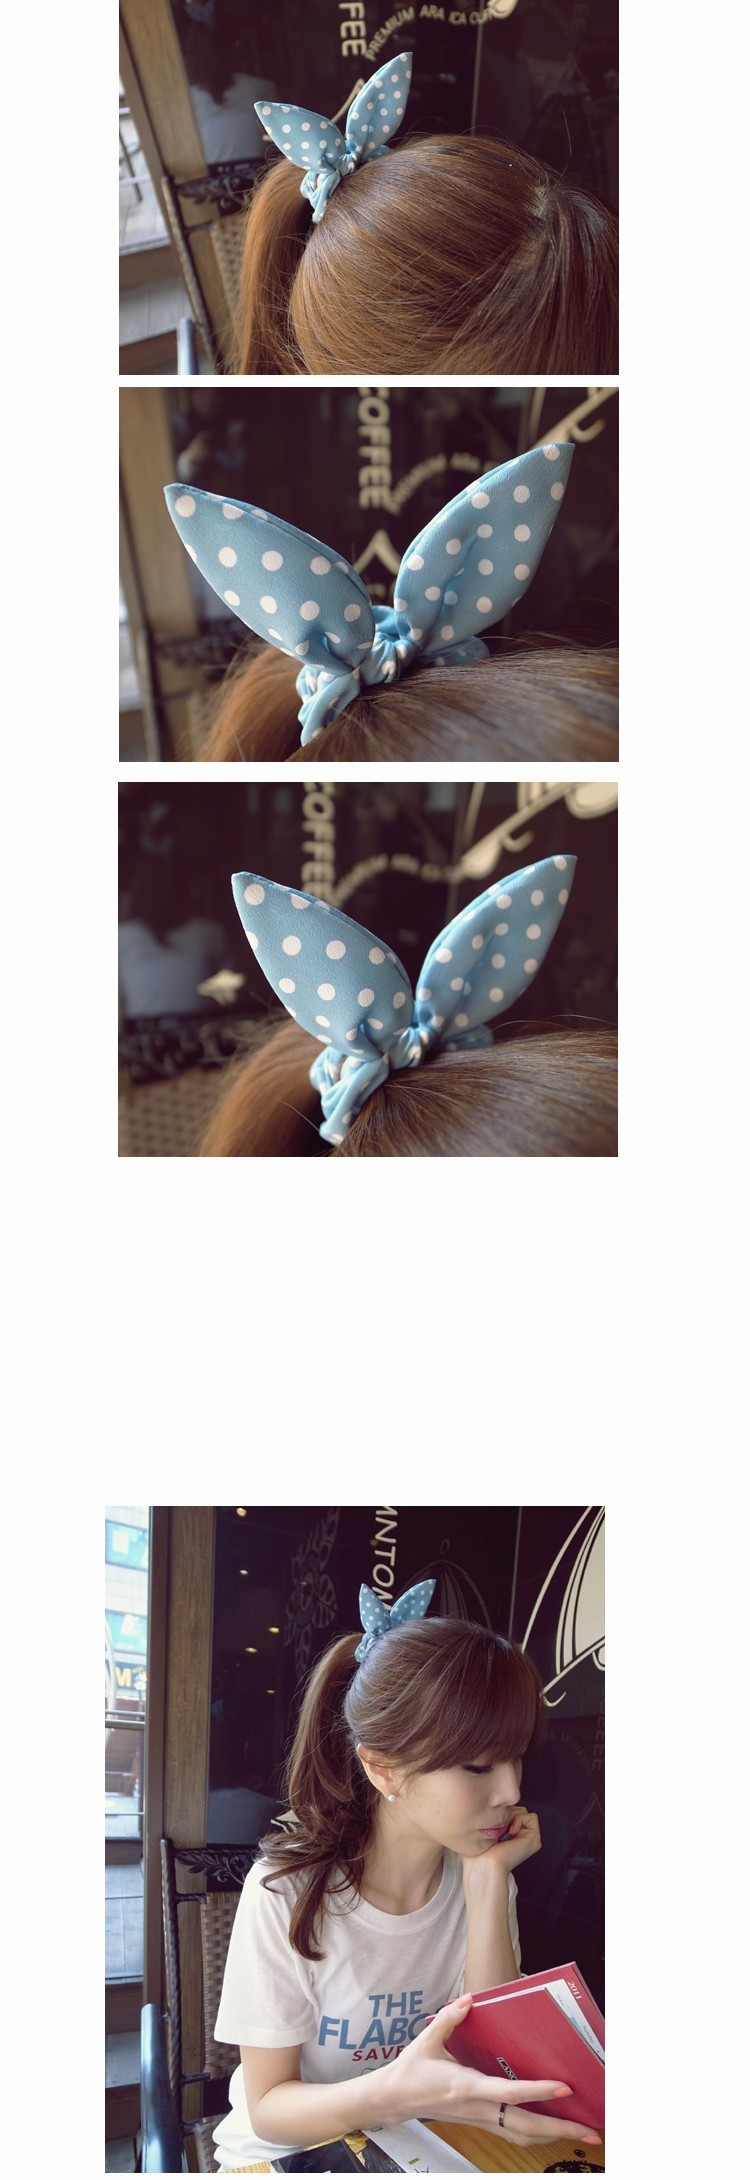 HTB1UvdFKXXXXXb6XpXXq6xXFXXXA Cute Polka Dot Rabbit Ears Hair Tie For Women - Various Styles